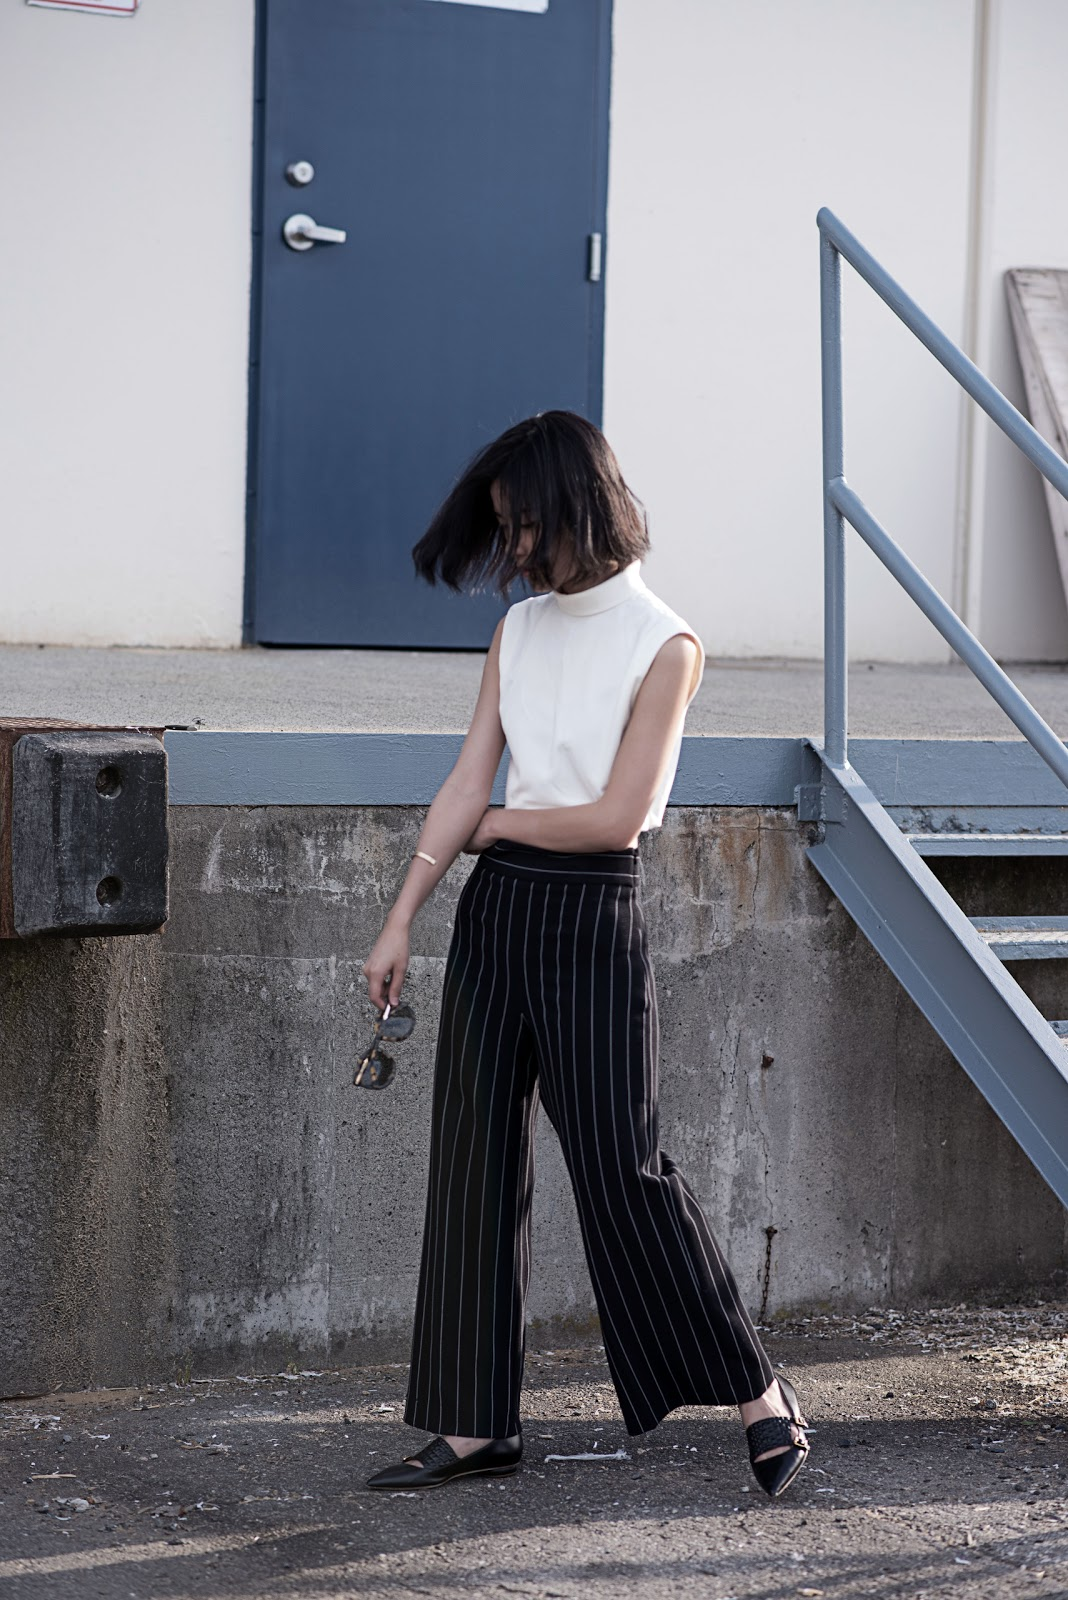 von vogue tibi crop top zara pants rupert sanderson flats